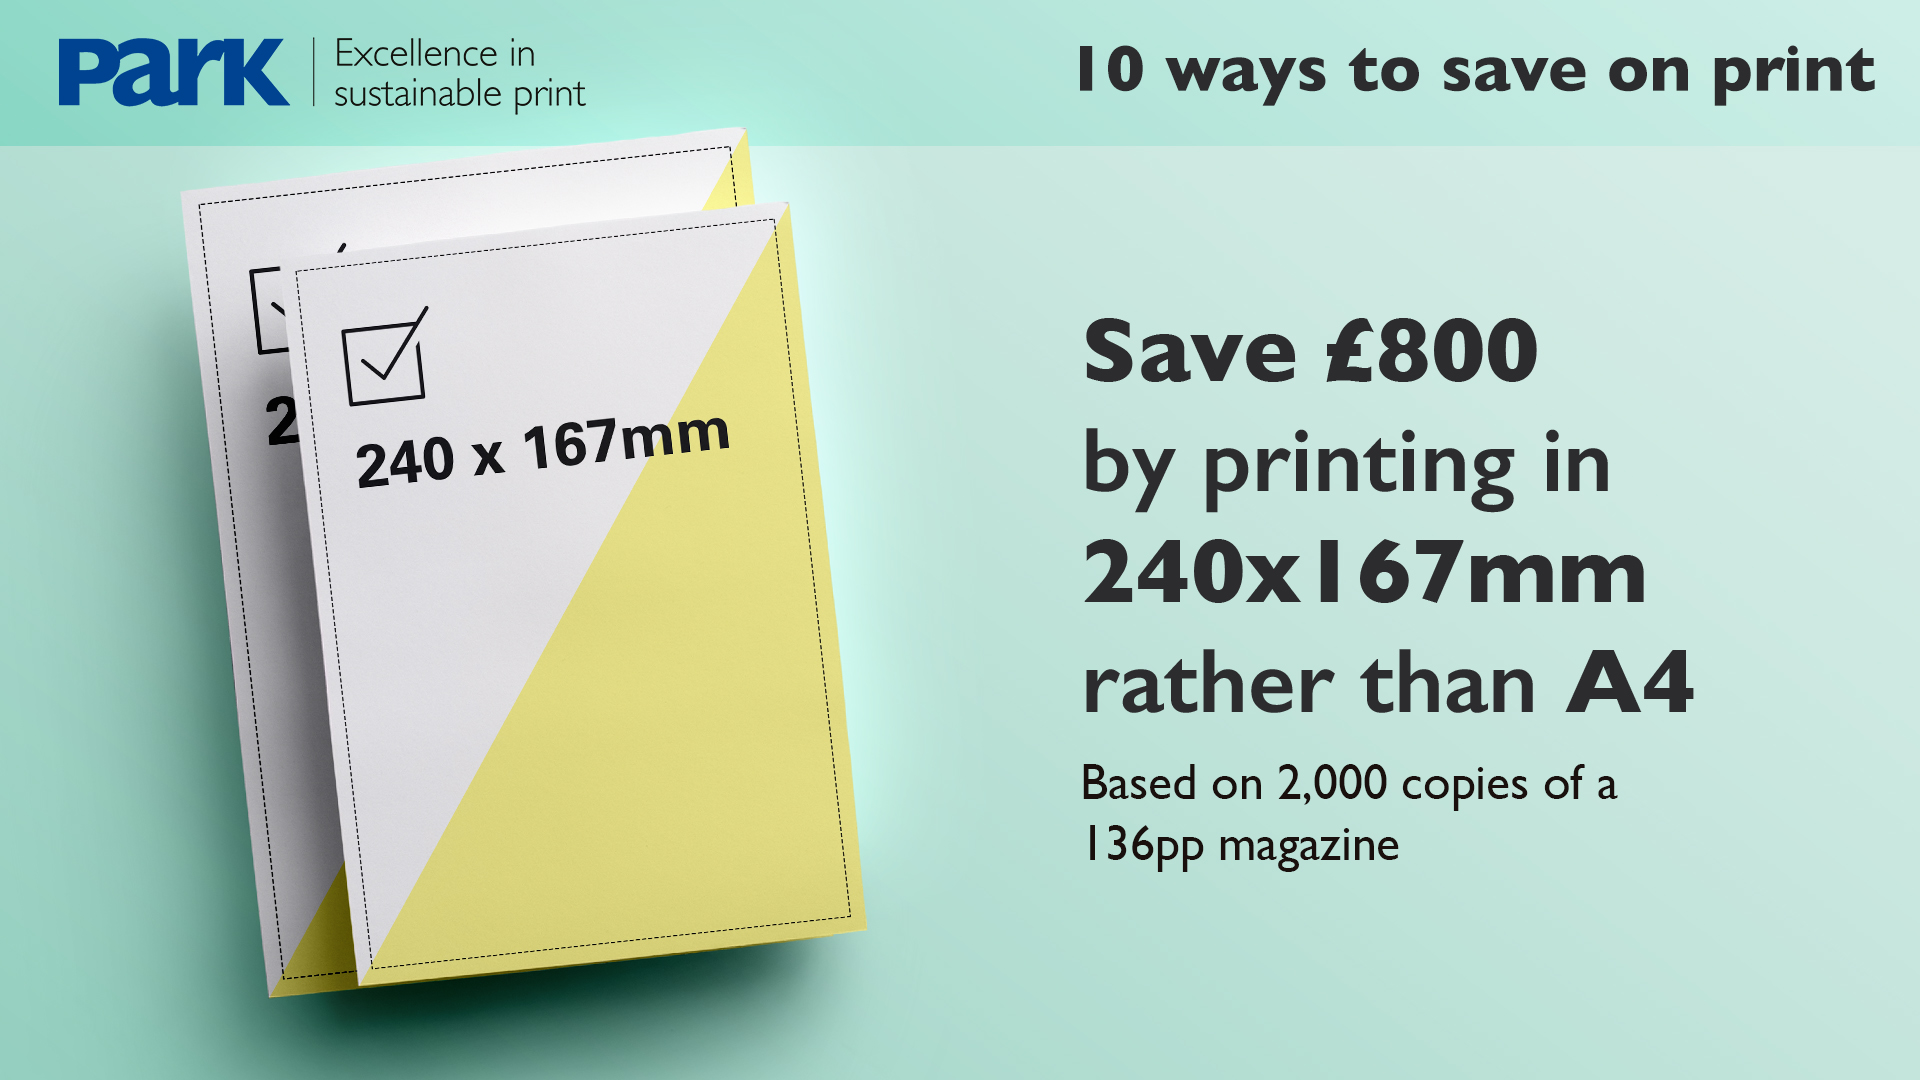 reduce print costs by printing on 240x167mm